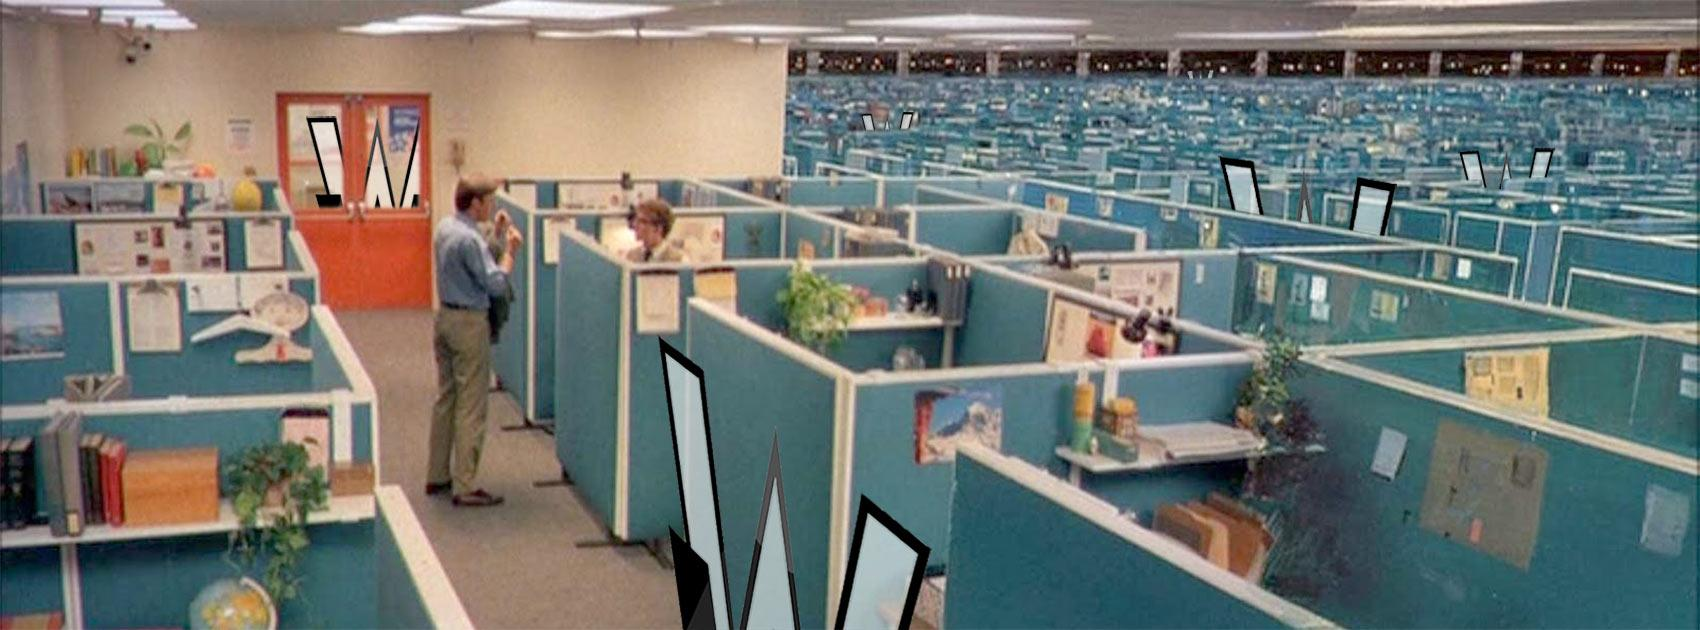 ENCOM Cubicle Farm